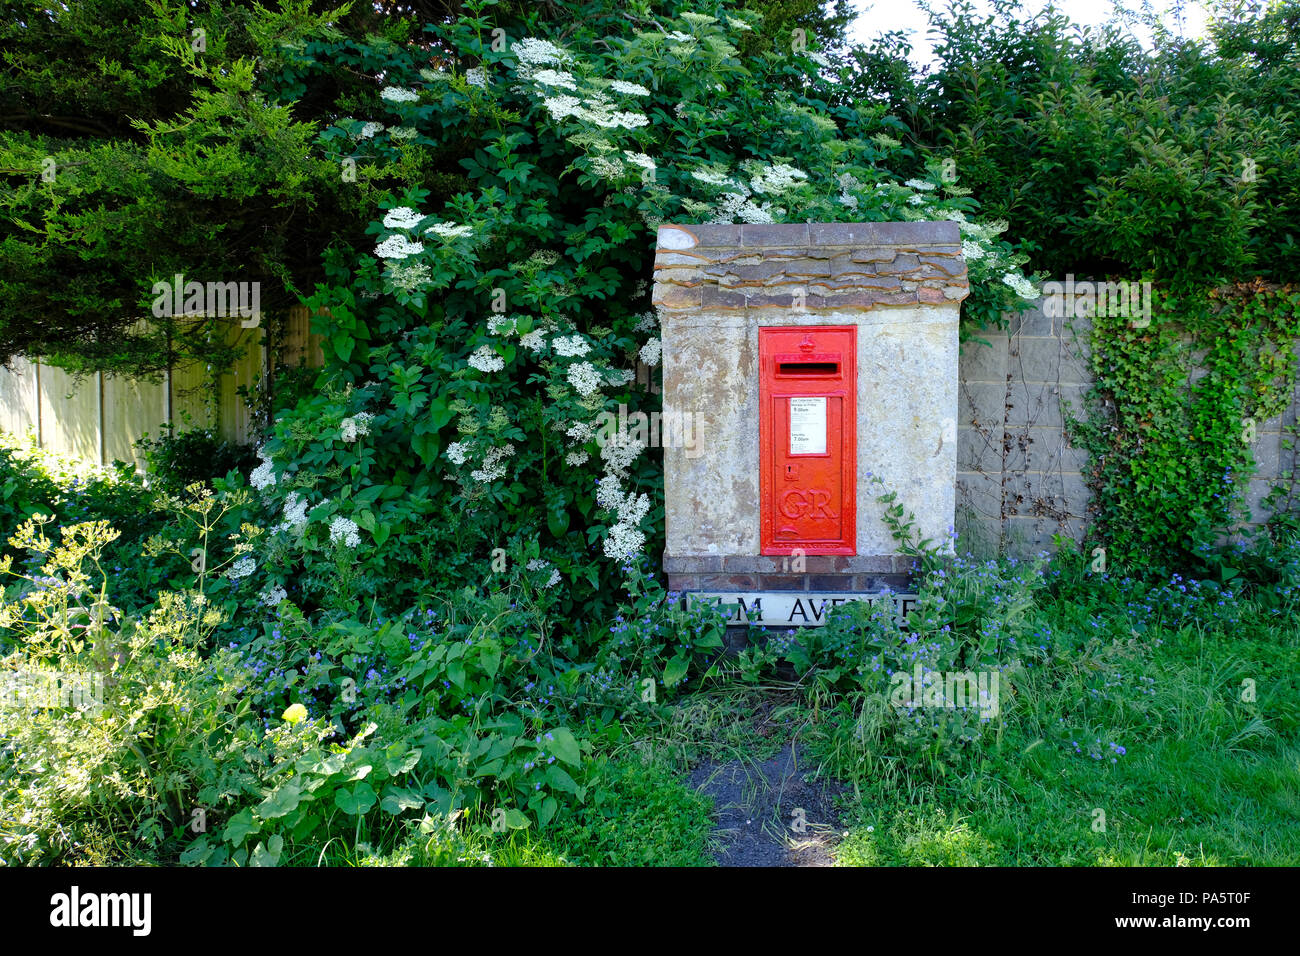 Wall recessed letter box surrounded by flowering plants - Stock Image